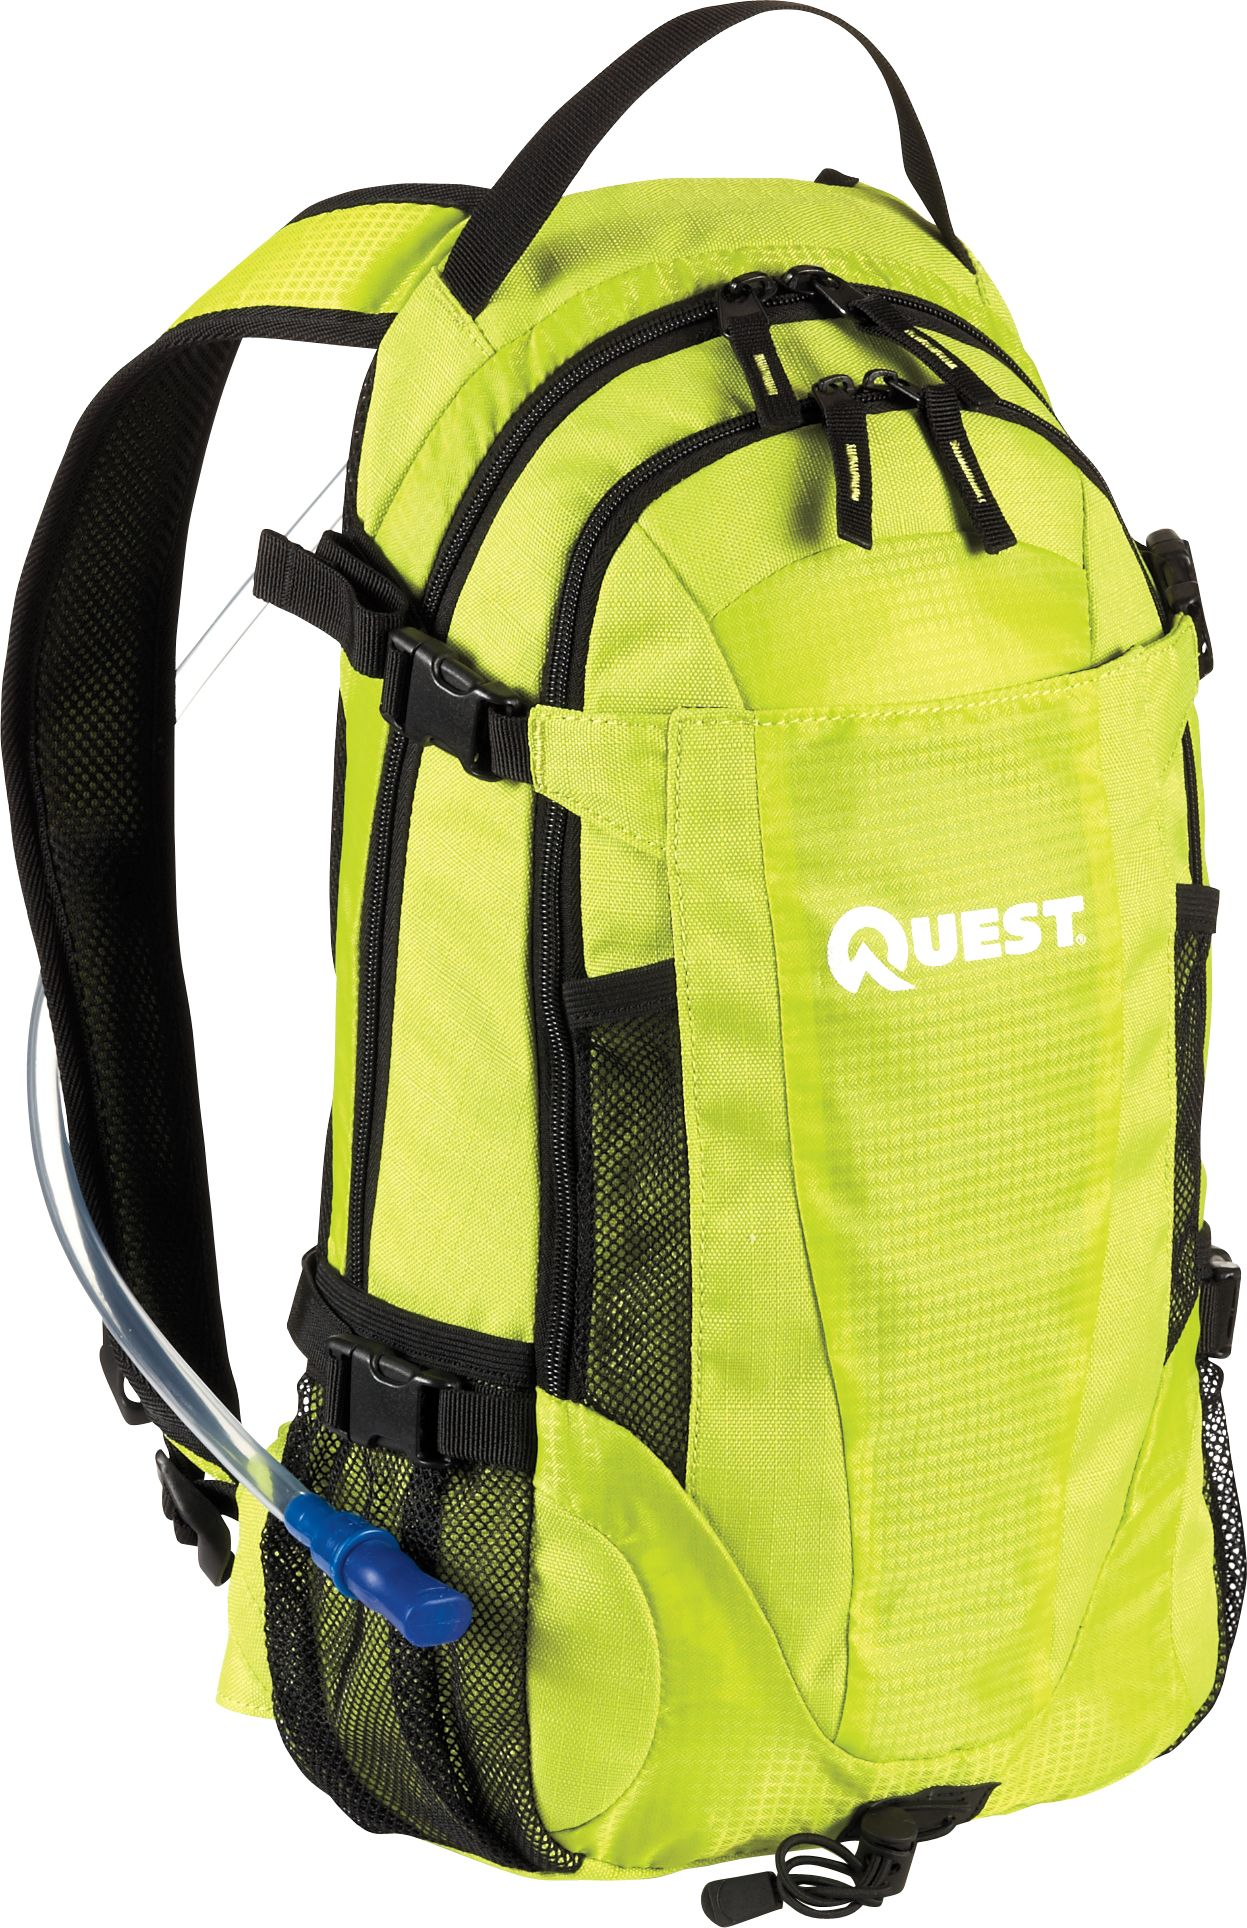 Quest 2L Hydration Pack| DICK'S Sporting Goods